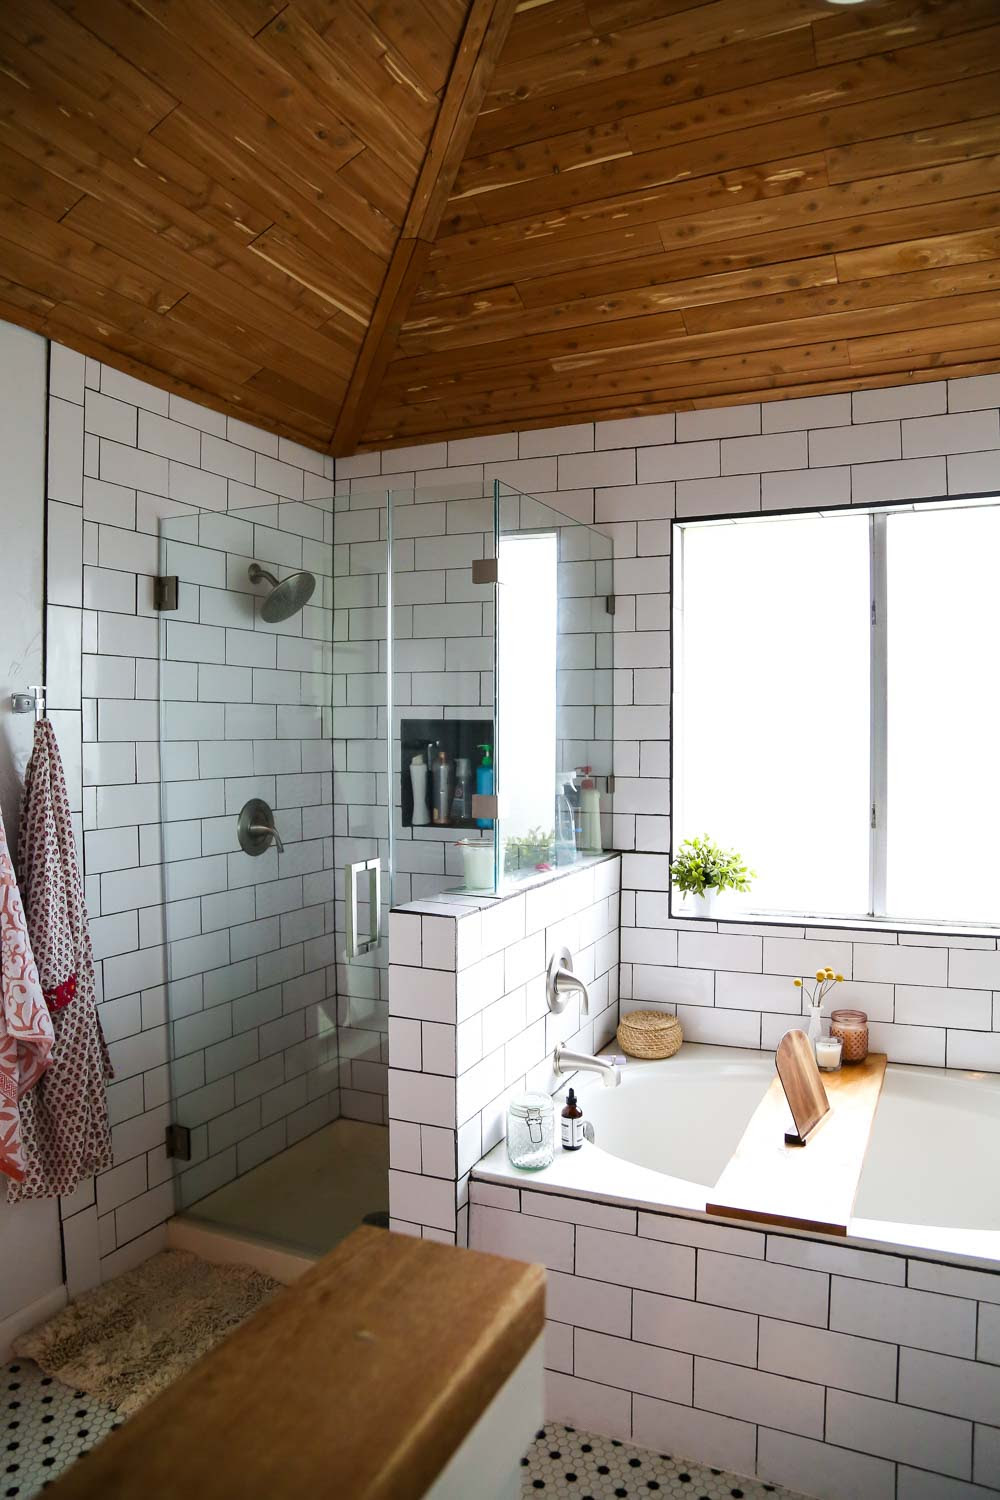 Before & After: A Master Bath Gets a Bright Makeover in ...